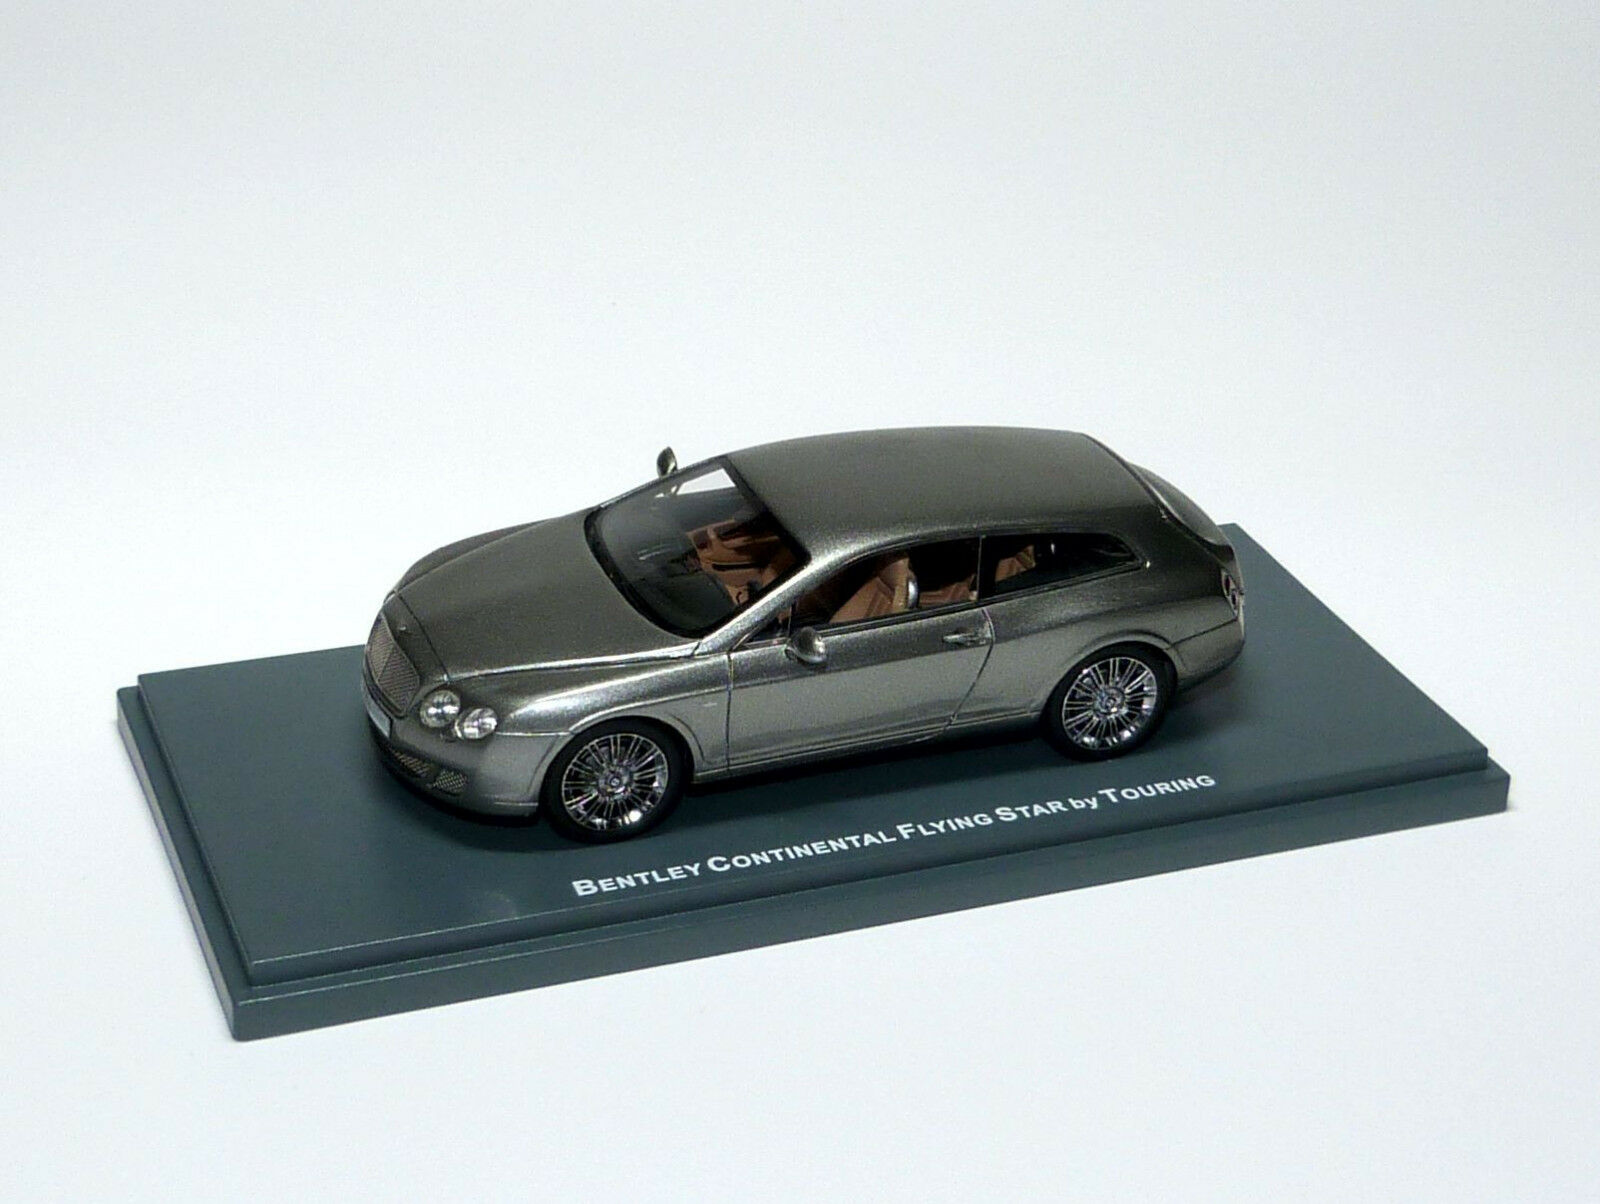 Bentley Continental Flying Star by Touring Silver Silver silver Neo 44215 1 43